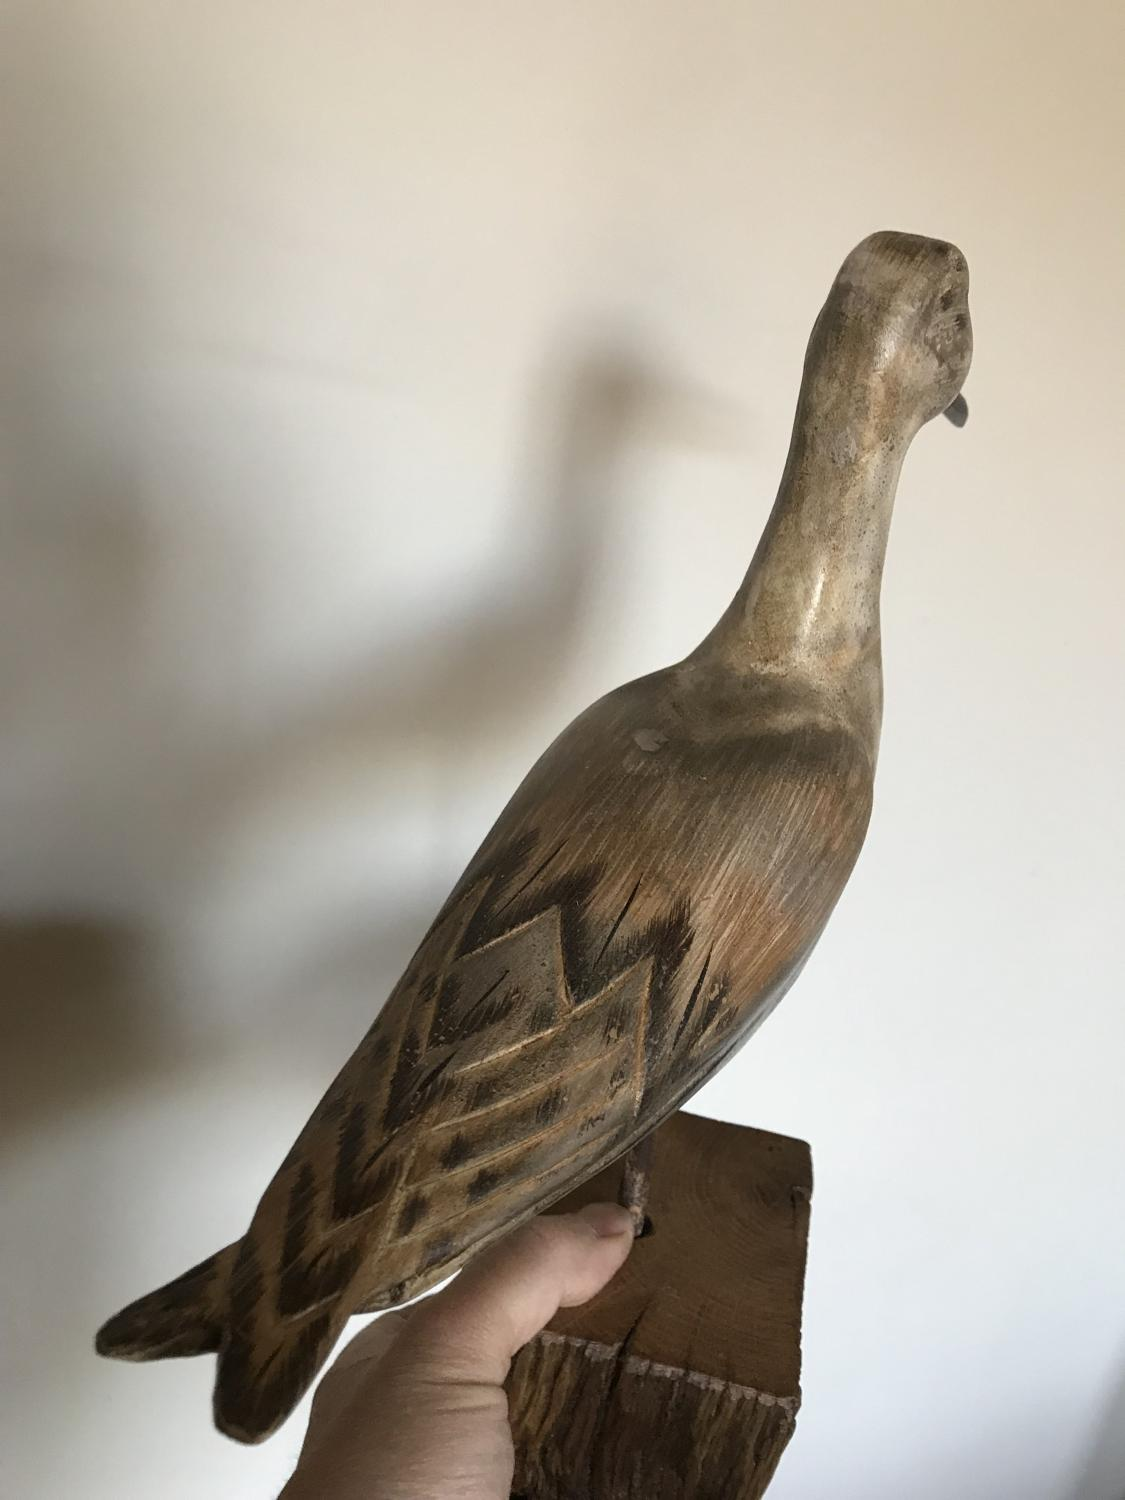 Vintage Bird Decoy – Wader